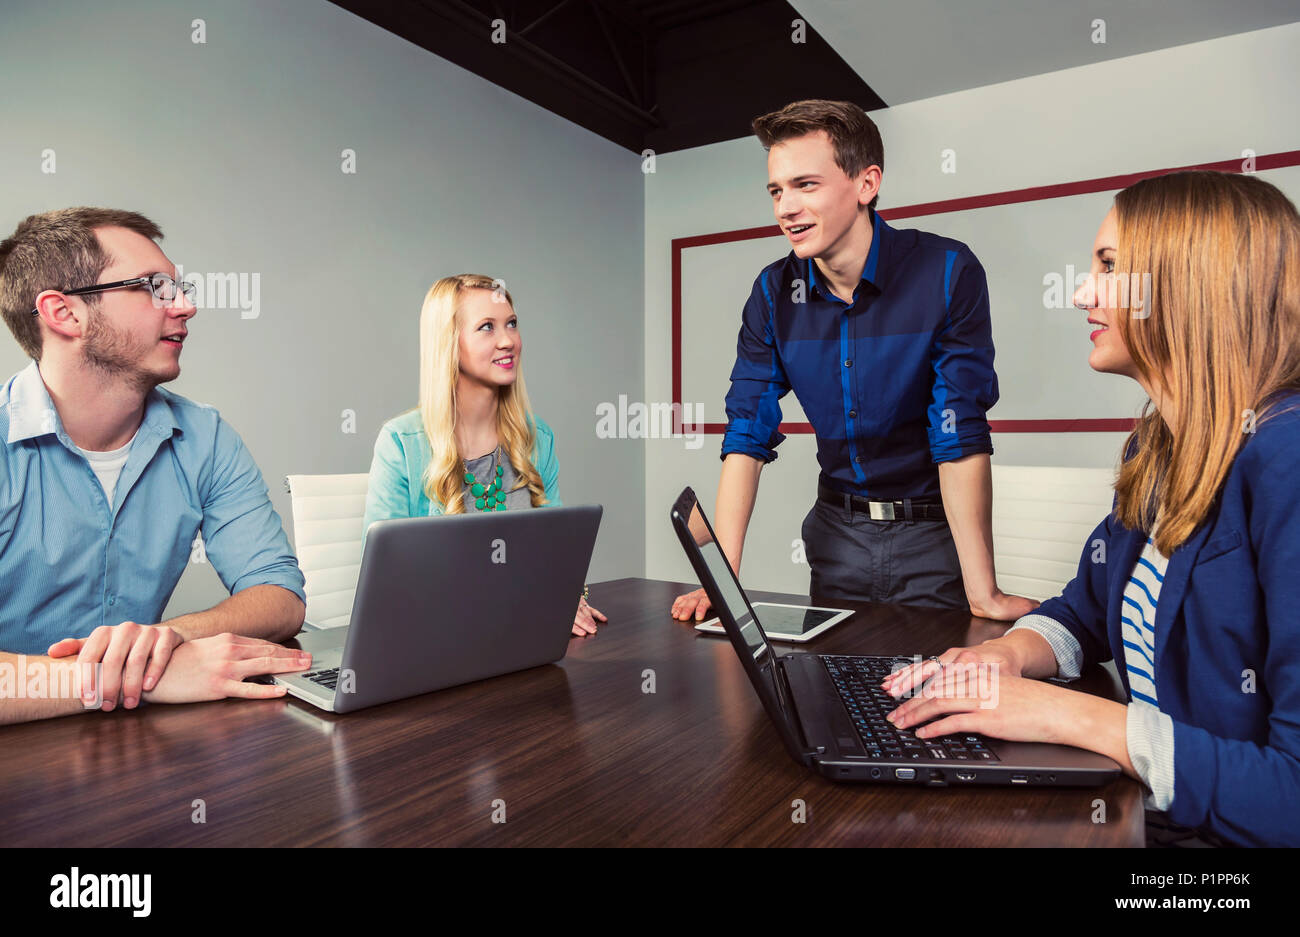 Young millennial businessman speaking to a group of young professionals in a conference room in a place of business; Sherwood Park, Alberta, Canada - Stock Image